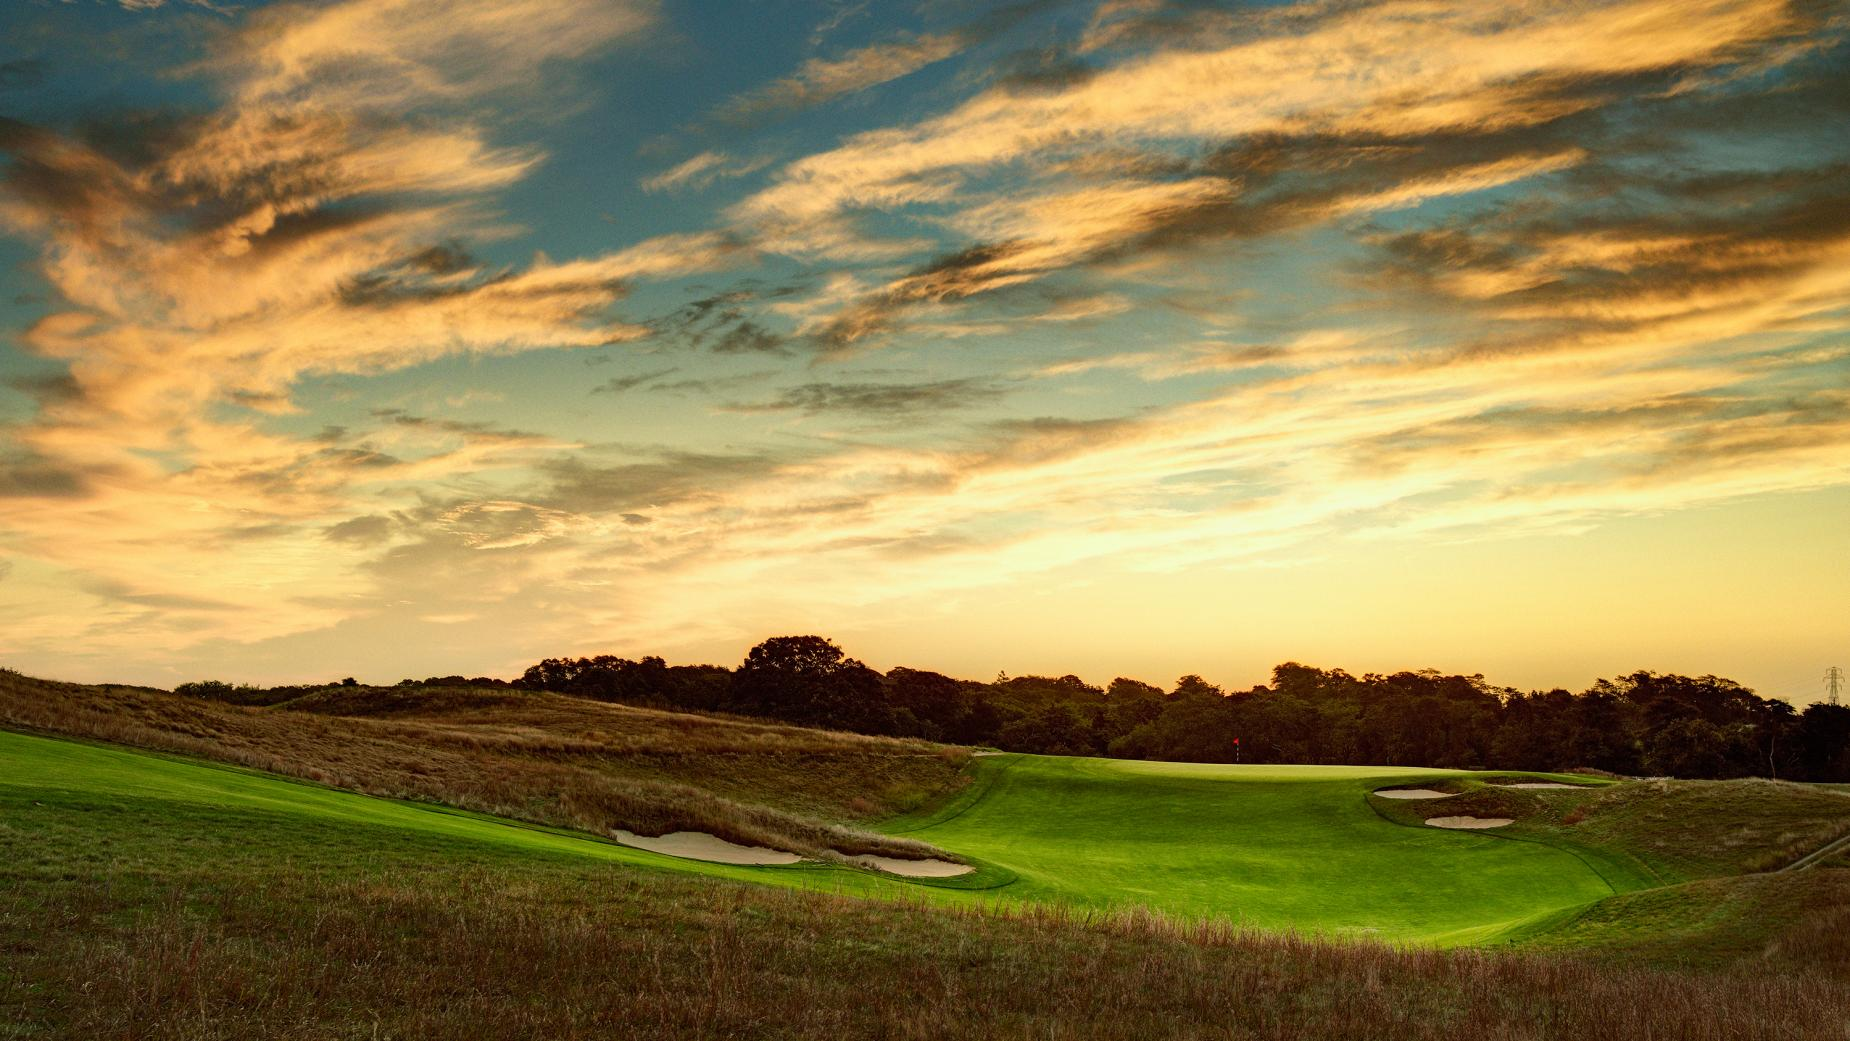 Shinnecock-Hills-GC-par-4-10th-hole.jpg